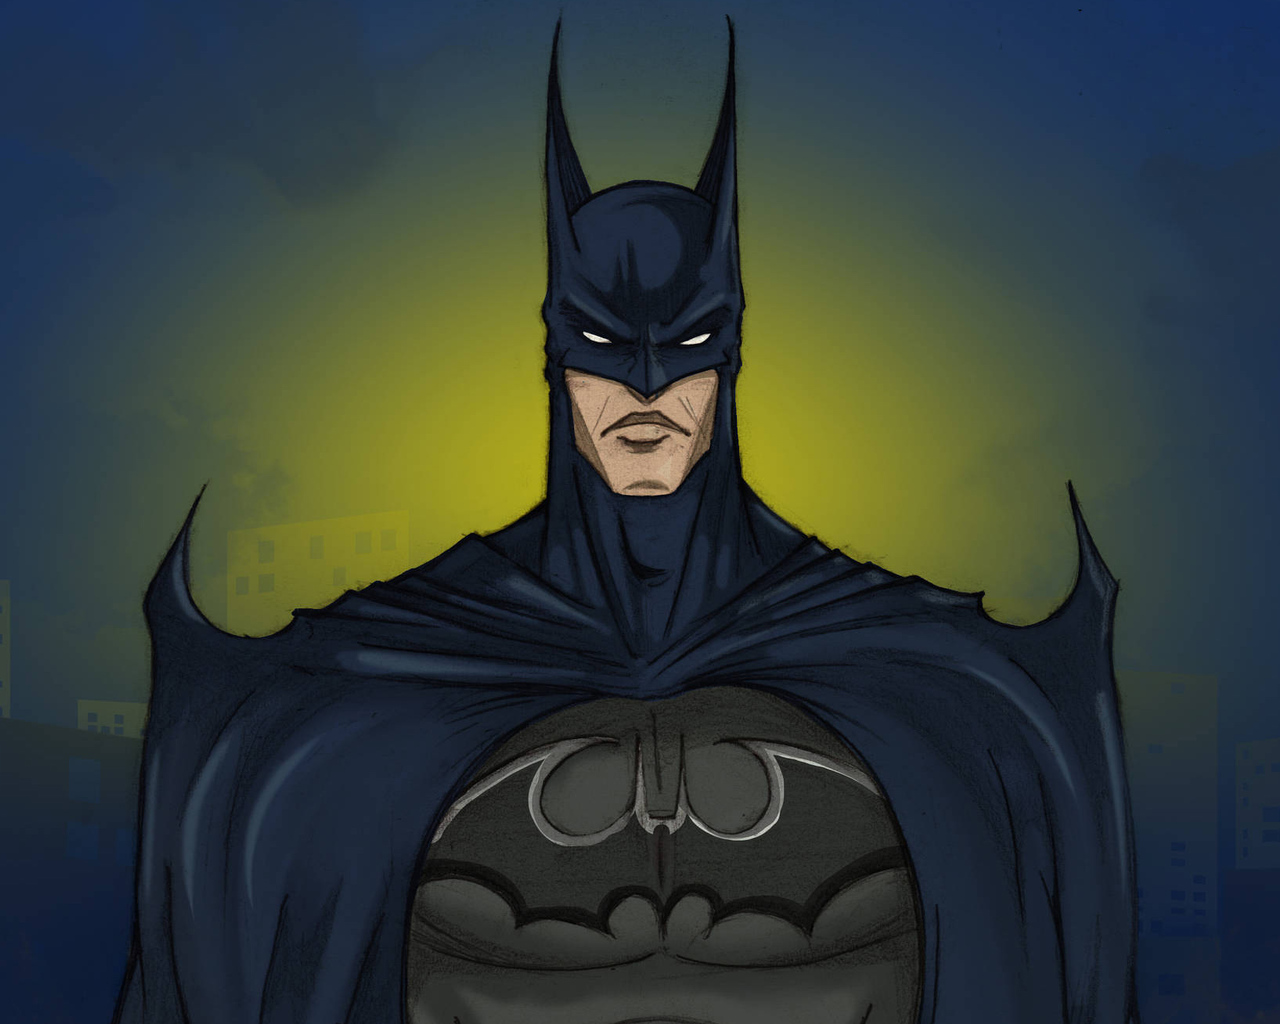 batman-sketch-art-la.jpg